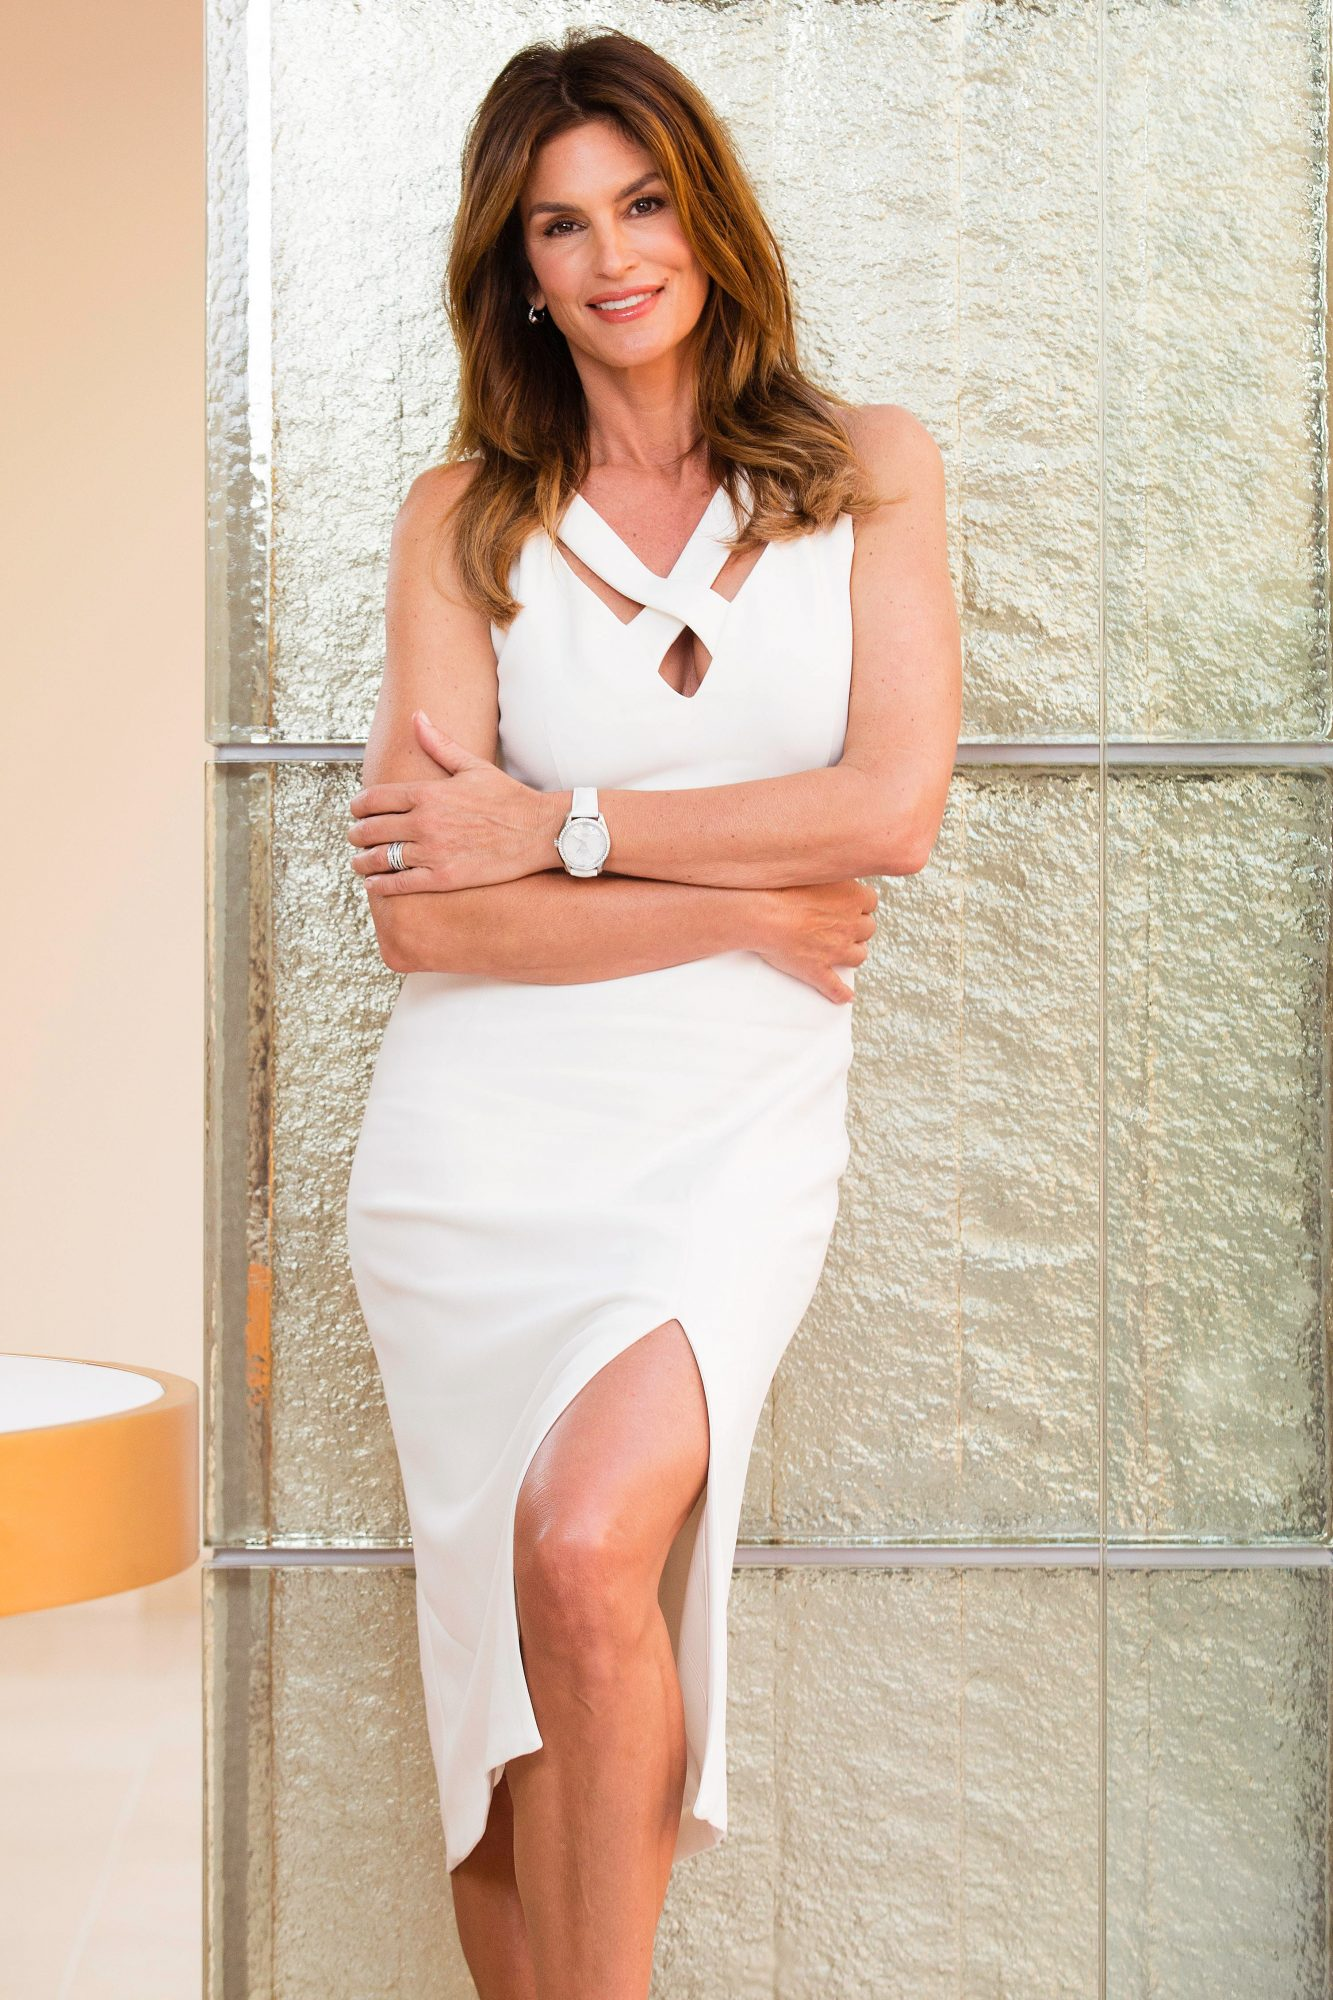 <p>CINDY CRAWFORD, 51: NOW</p>